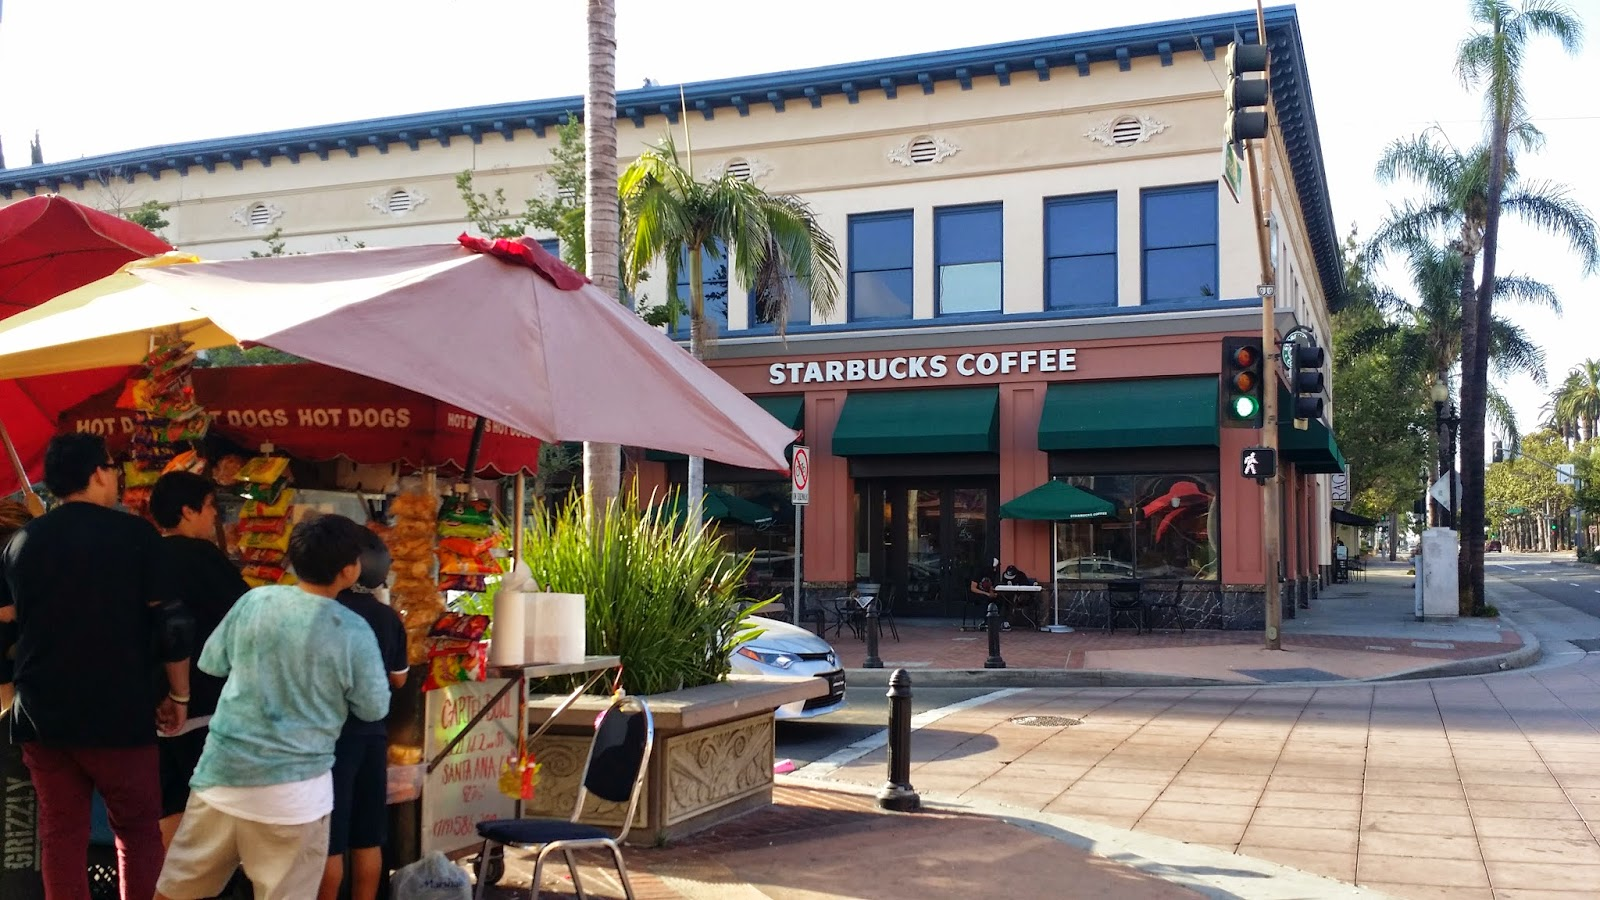 Traditional Downtown Santa Ana street vendor juxtaposed with their new modern  neighbors, Starbucks Coffee.